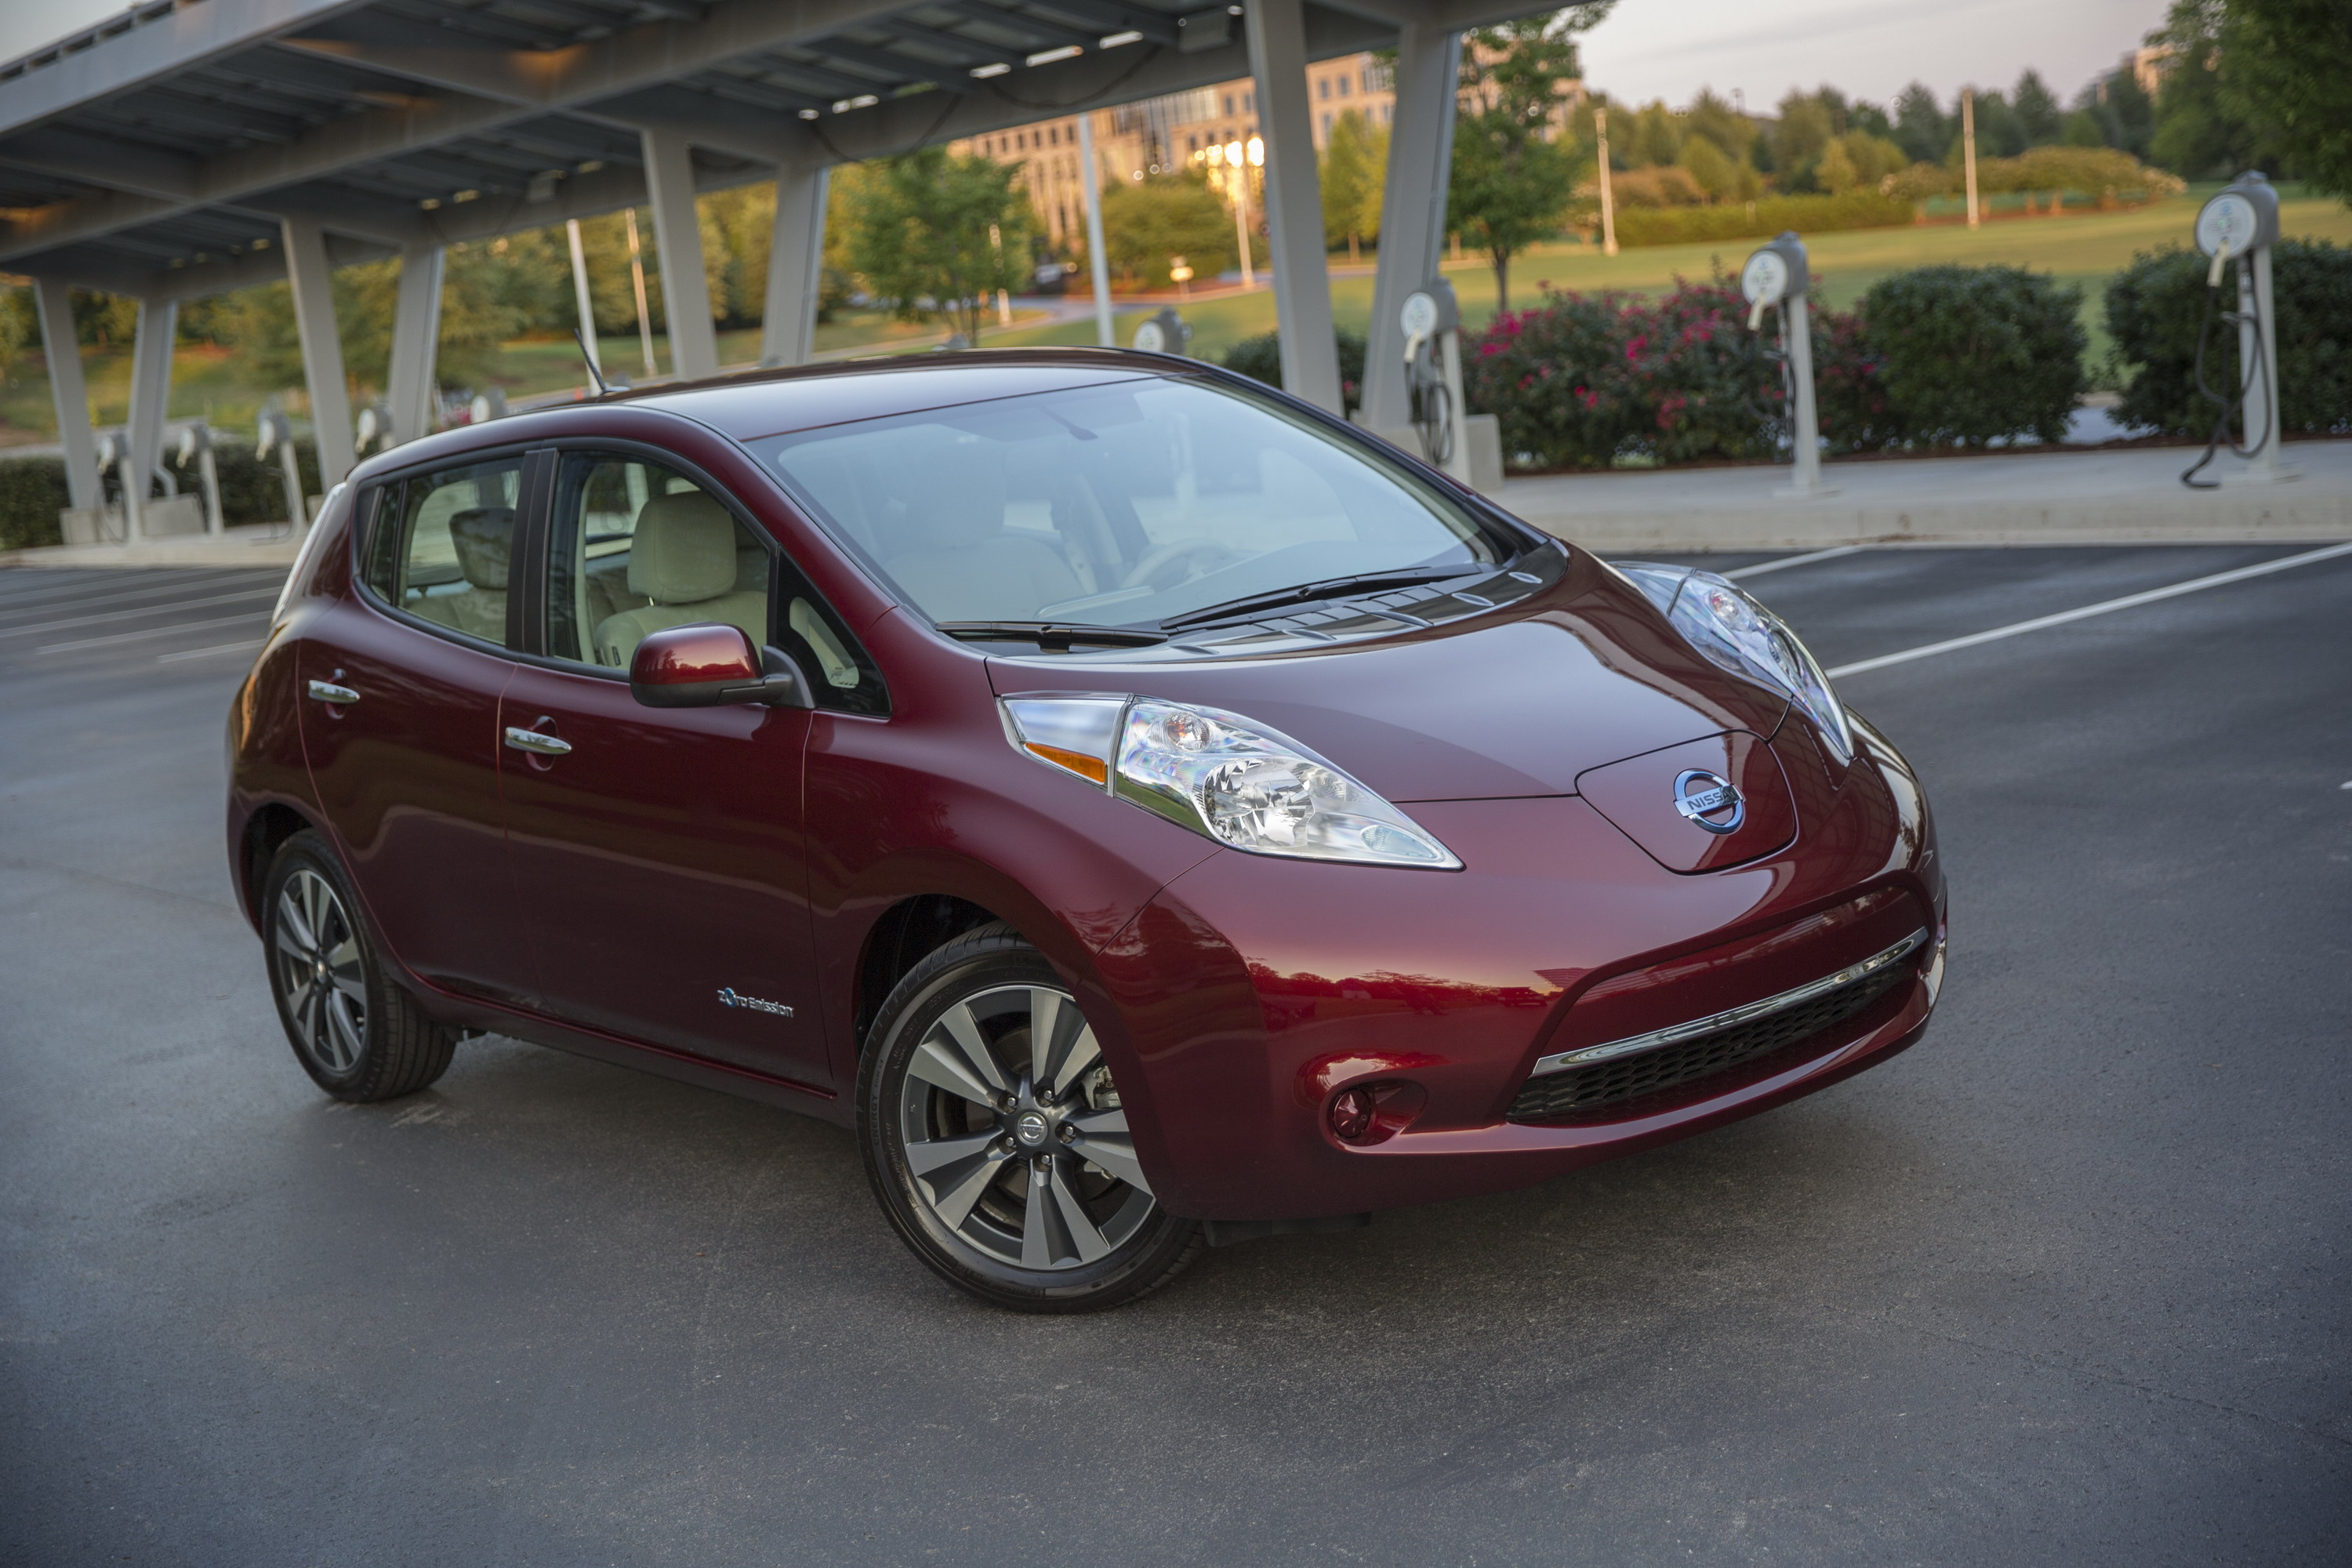 leaf sales electric gm including tesla sold but an leafs ev to obsession one slightly in overall volts cleantechnica nissan cars more fewer crushes car